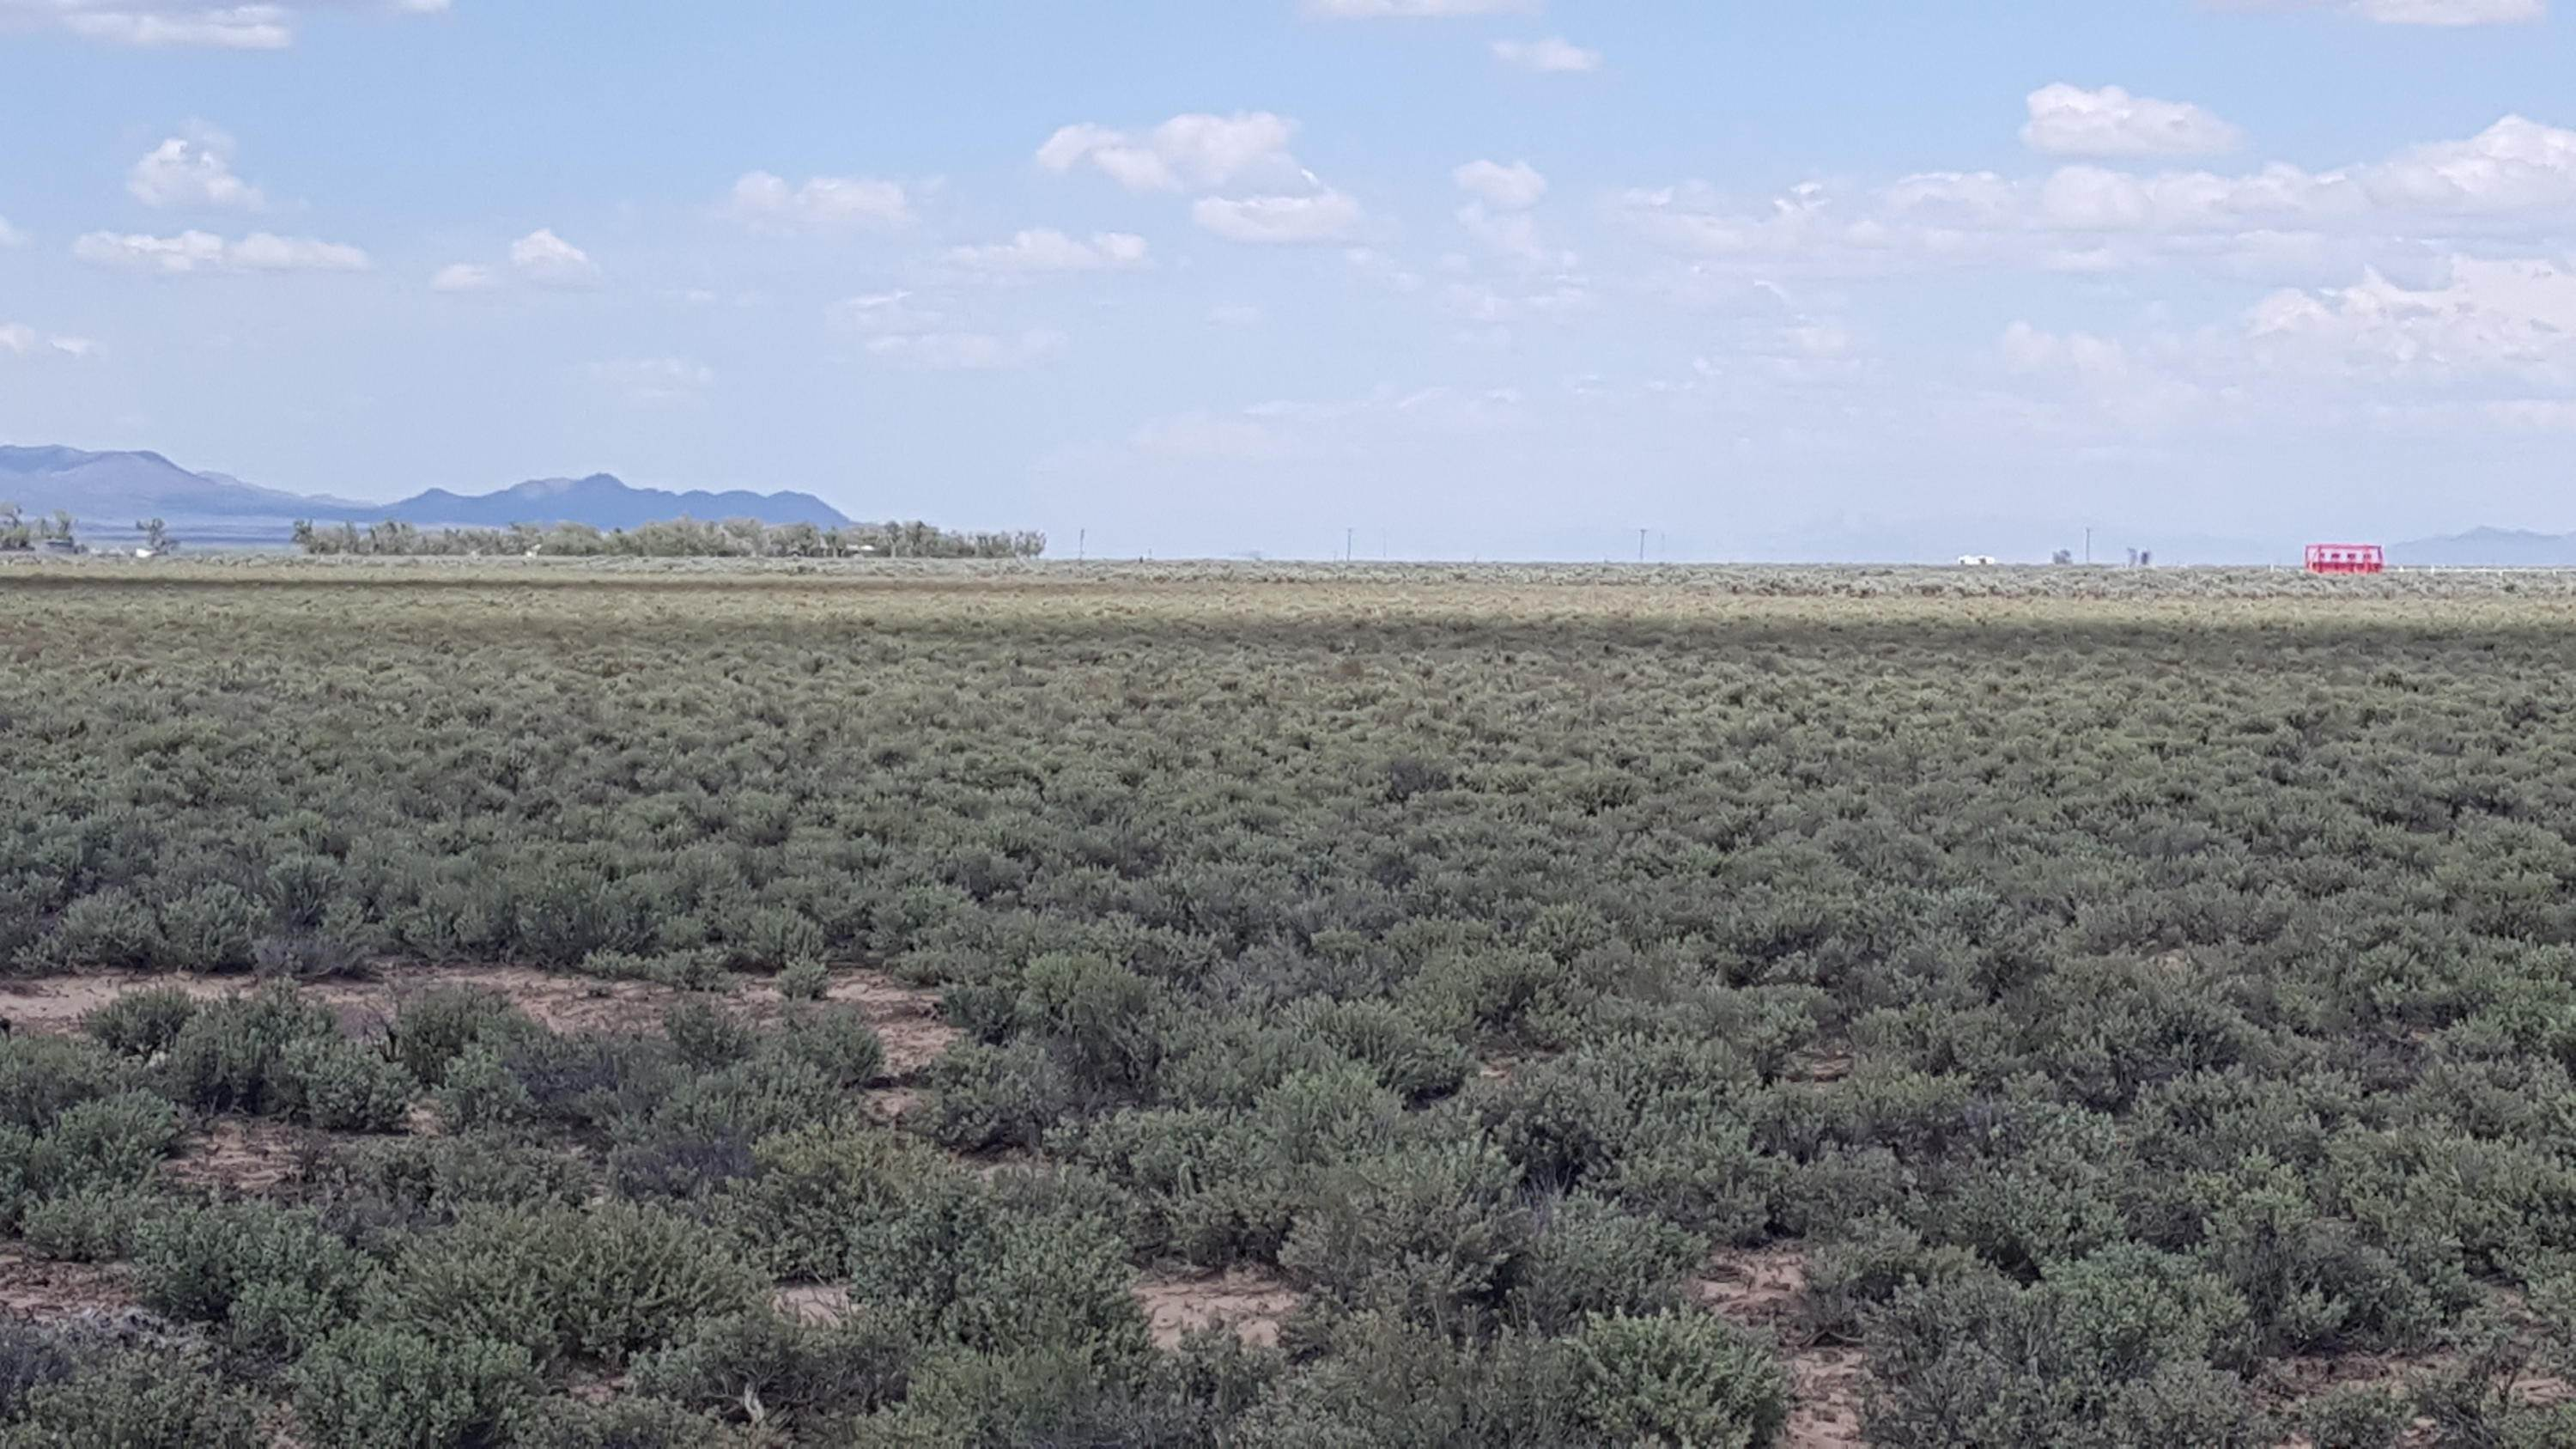 Land for Sale at 126.97 ACR ESCALANTE VALLEY UNIT 18 Beryl, Utah 84714 United States